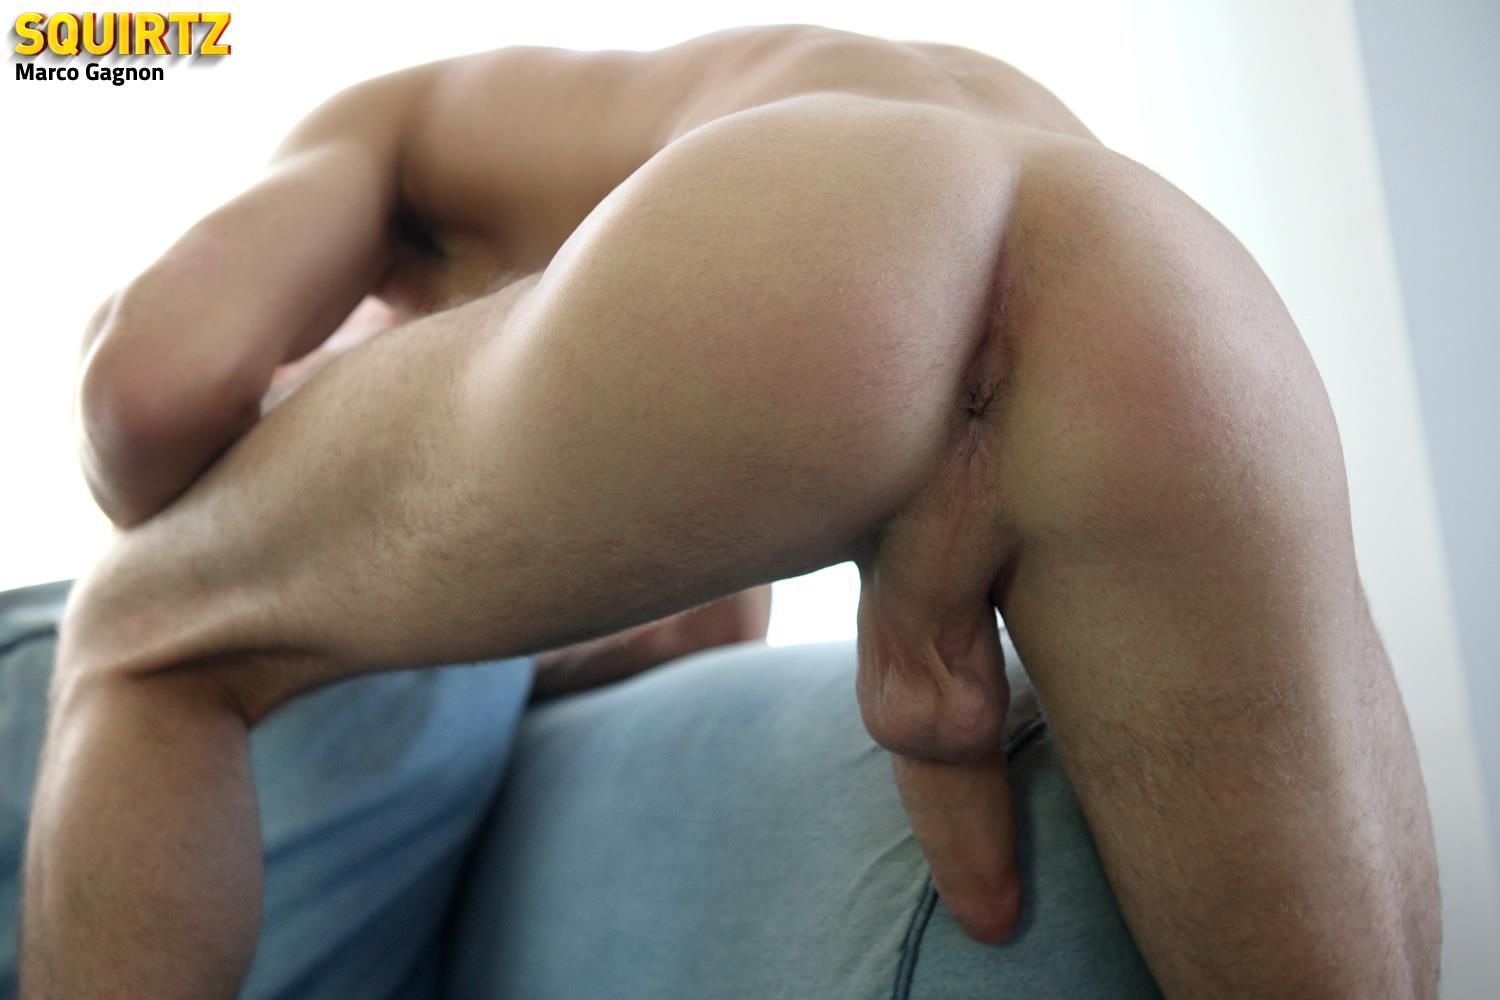 Squirtz Marco Gagnon Twink With A Massive Uncut Cock Jerk Off Amateur Gay Porn 22 Young and Hung Marco Gagnon Stokes His Massive Uncut Cock